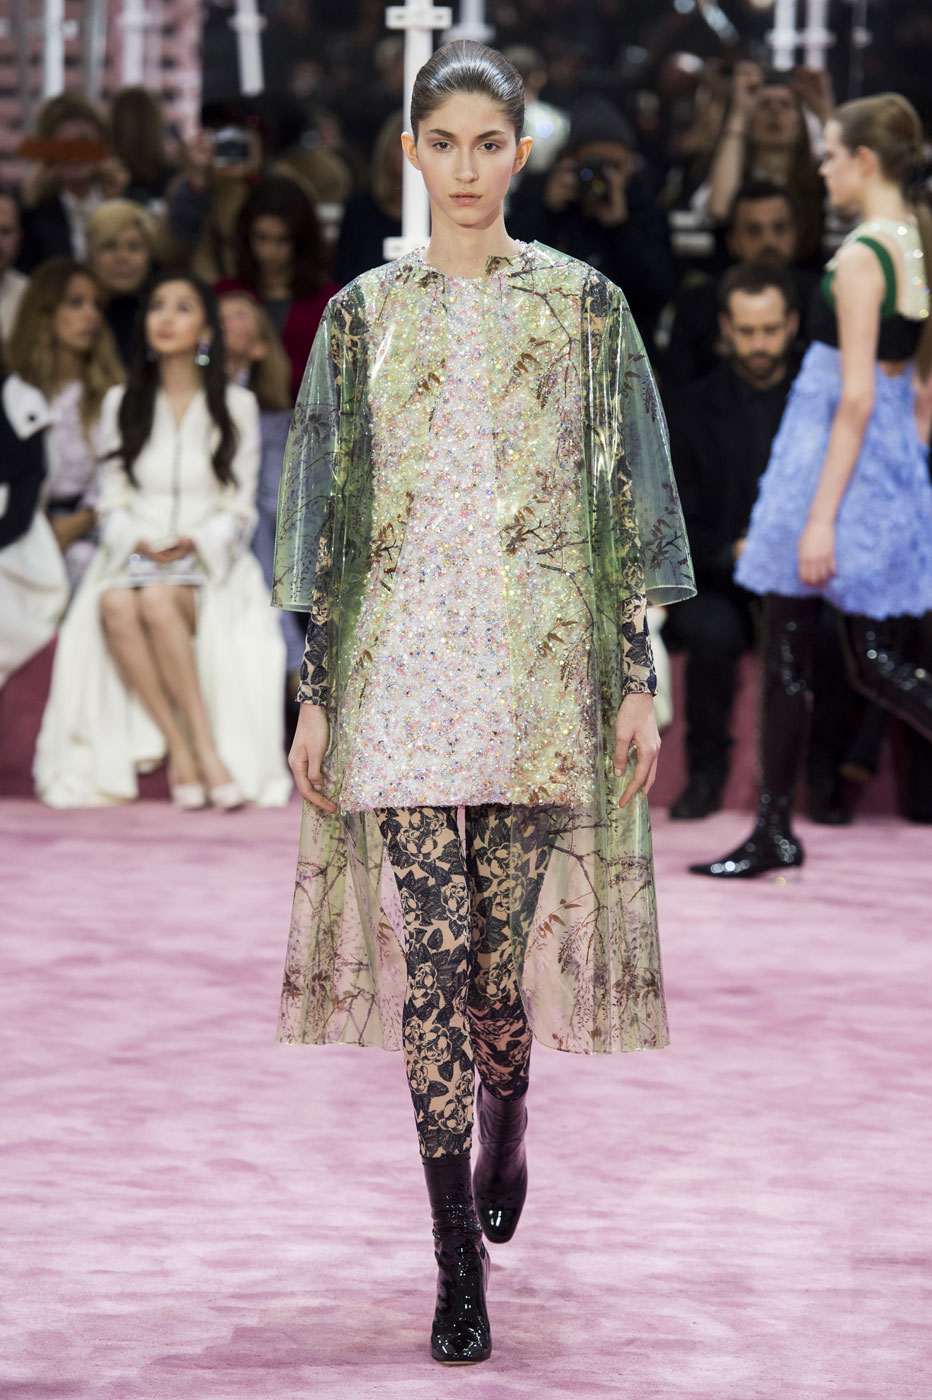 Christian-Dior-fashion-runway-show-haute-couture-paris-spring-summer-2015-the-impression-049